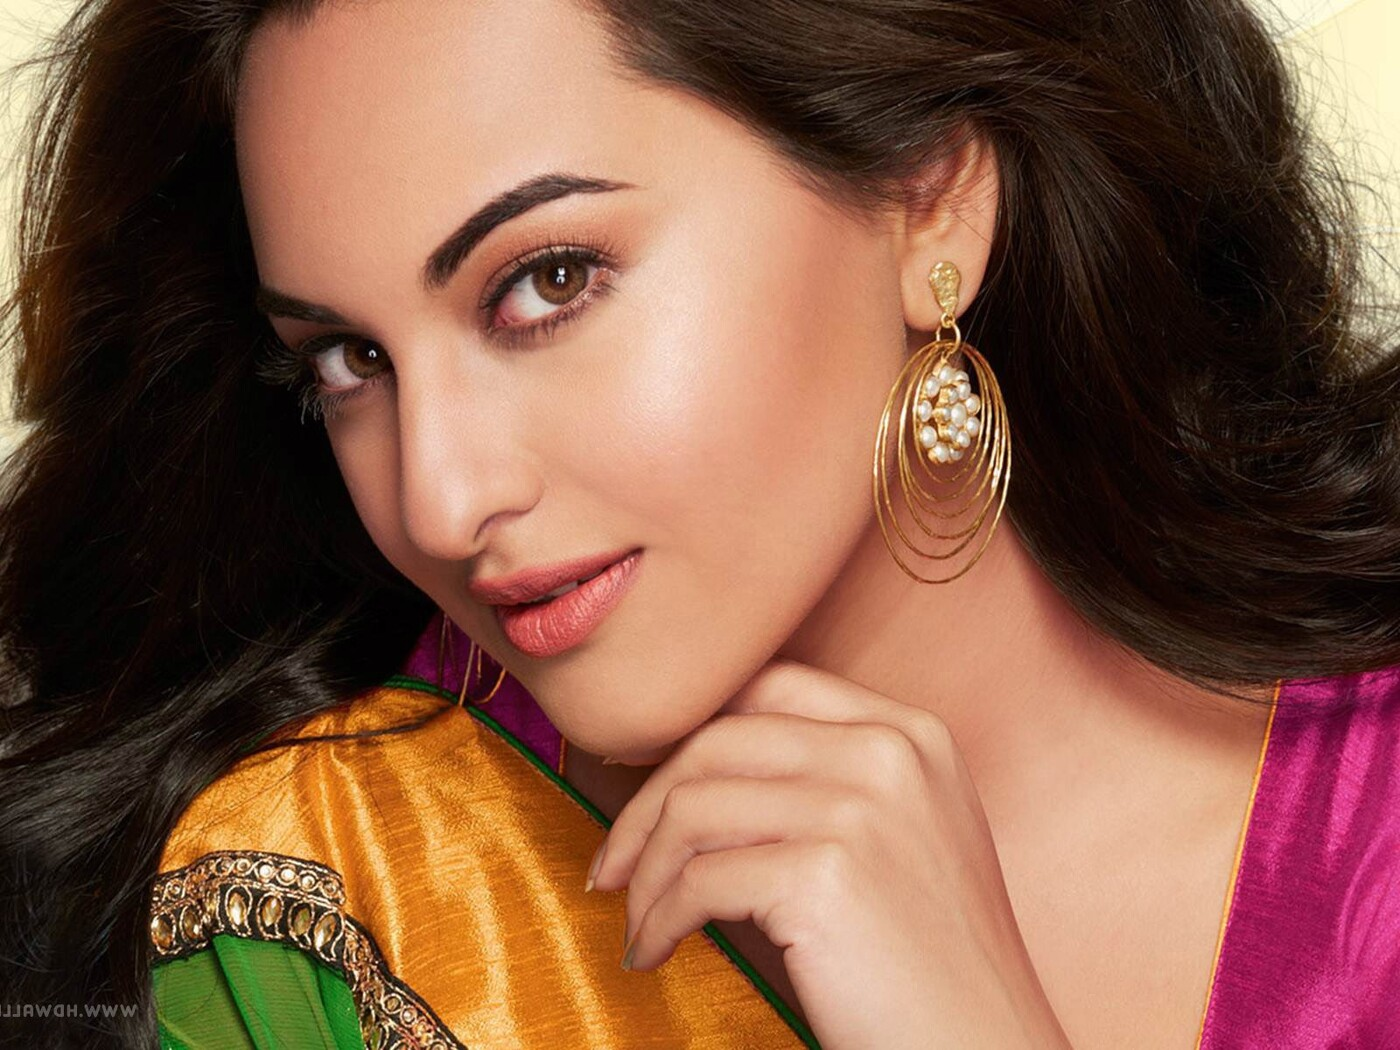 1400x1050 Sonakshi Sinha 7 1400x1050 Resolution HD 4k